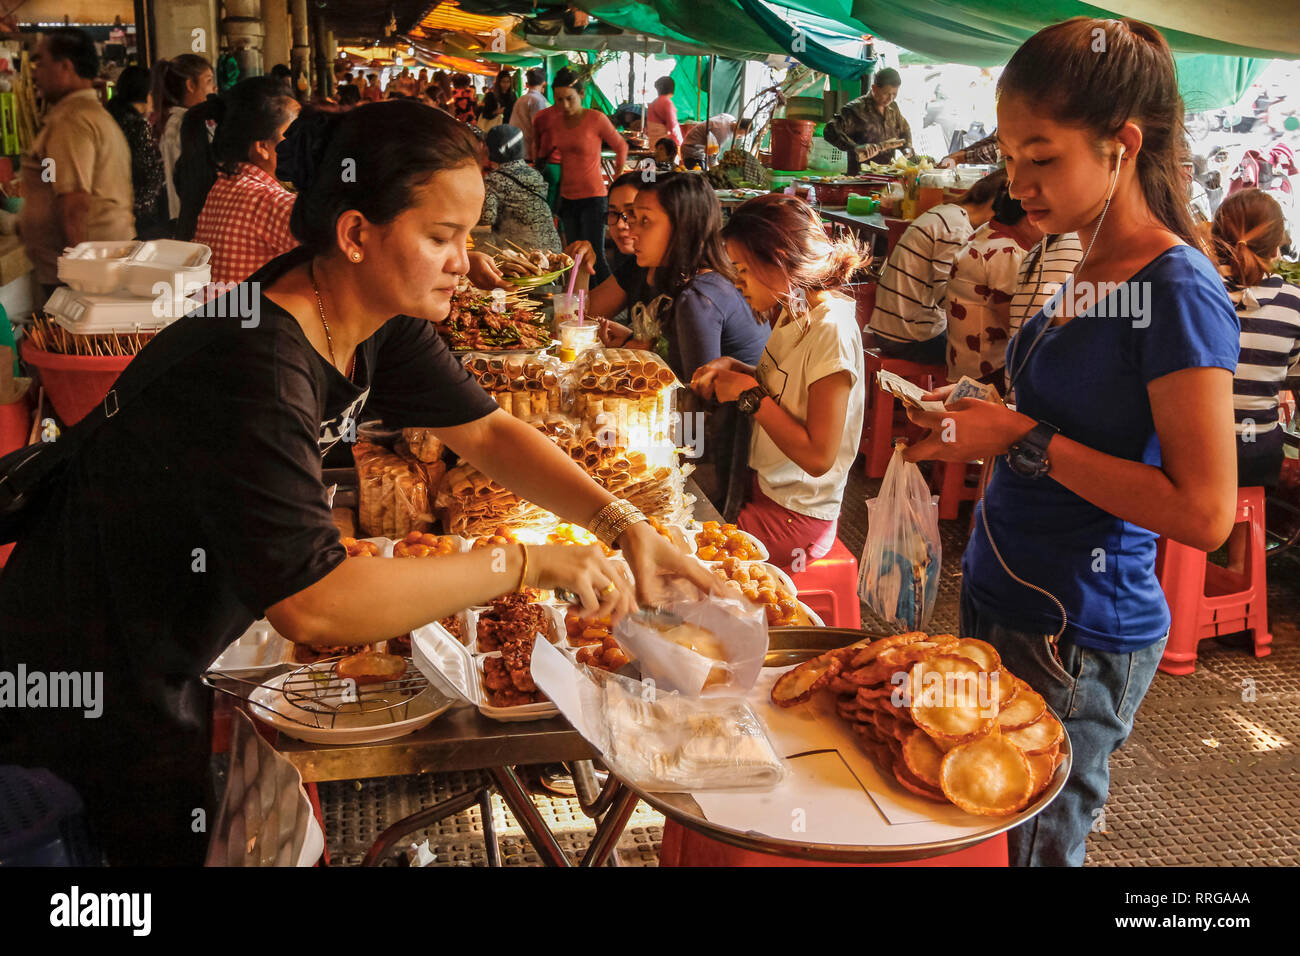 Girl wearing headphones buys food in the eating area of this huge old market, Central Market, city centre, Phnom Penh, Cambodia, Indochina - Stock Image